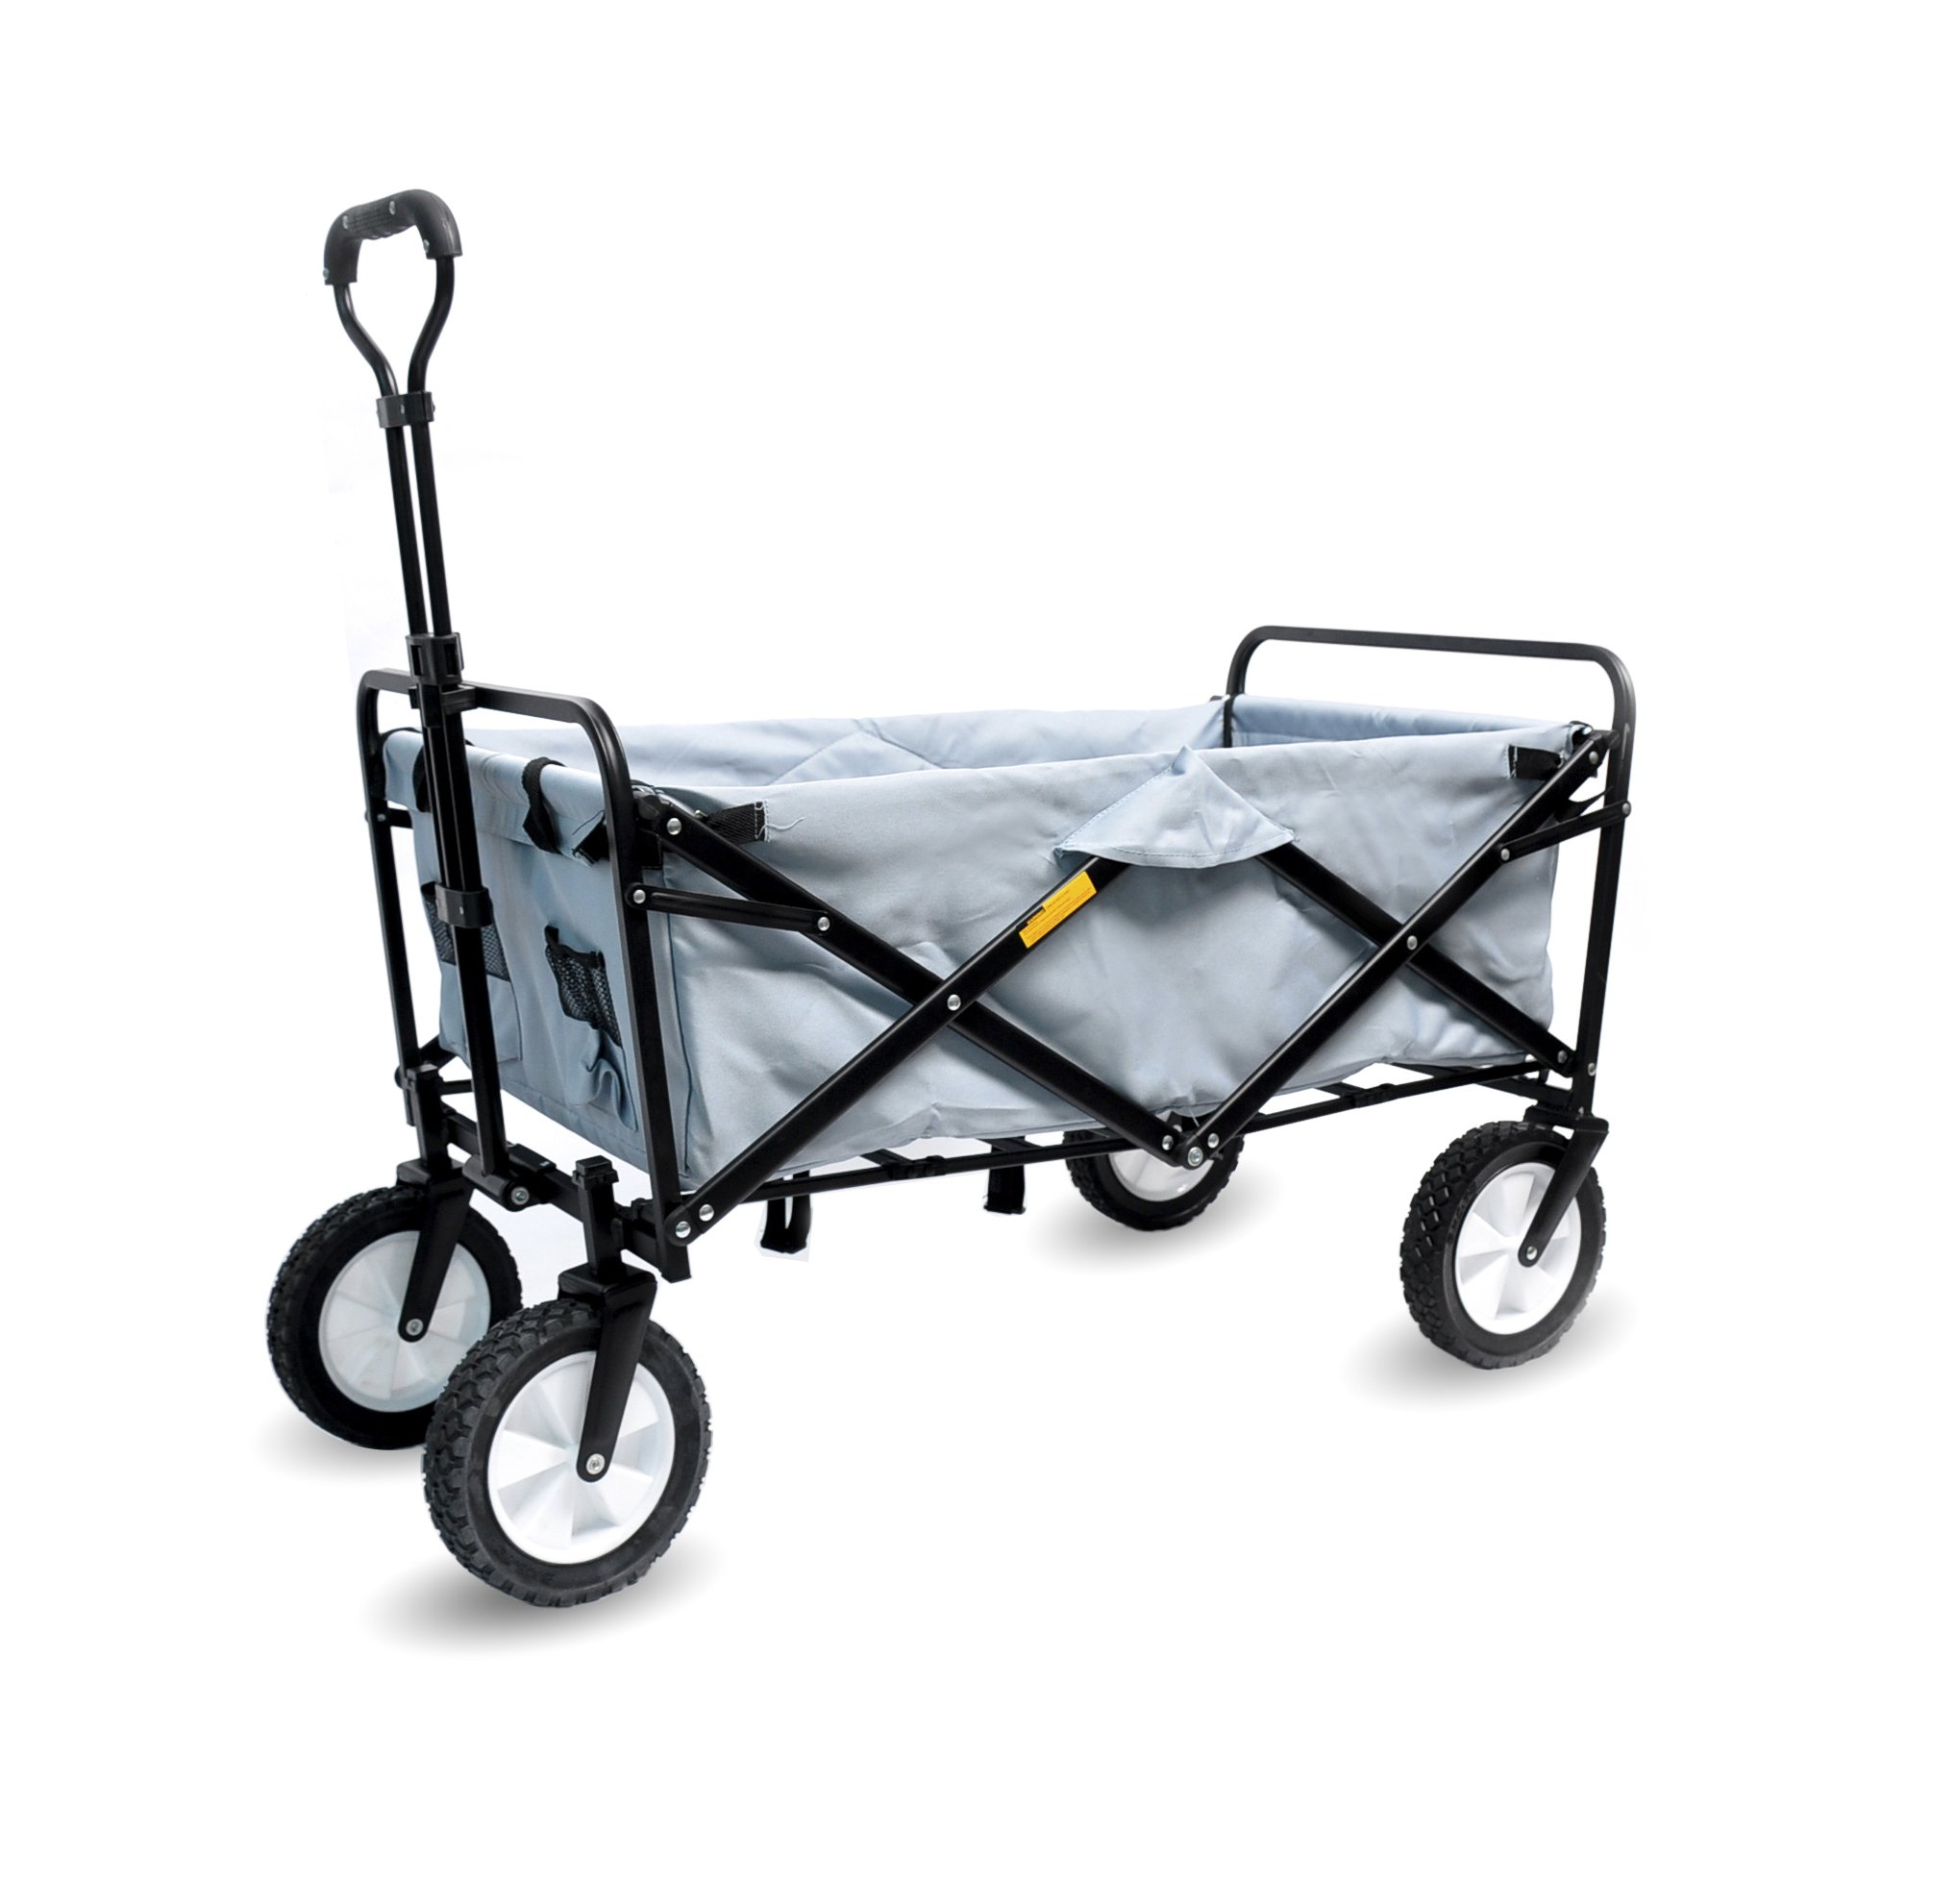 WHITSUNDAY Collapsible Folding Garden Outdoor Park Utility 30'' Picnic Wagon 1 Years Warranty (Silver)